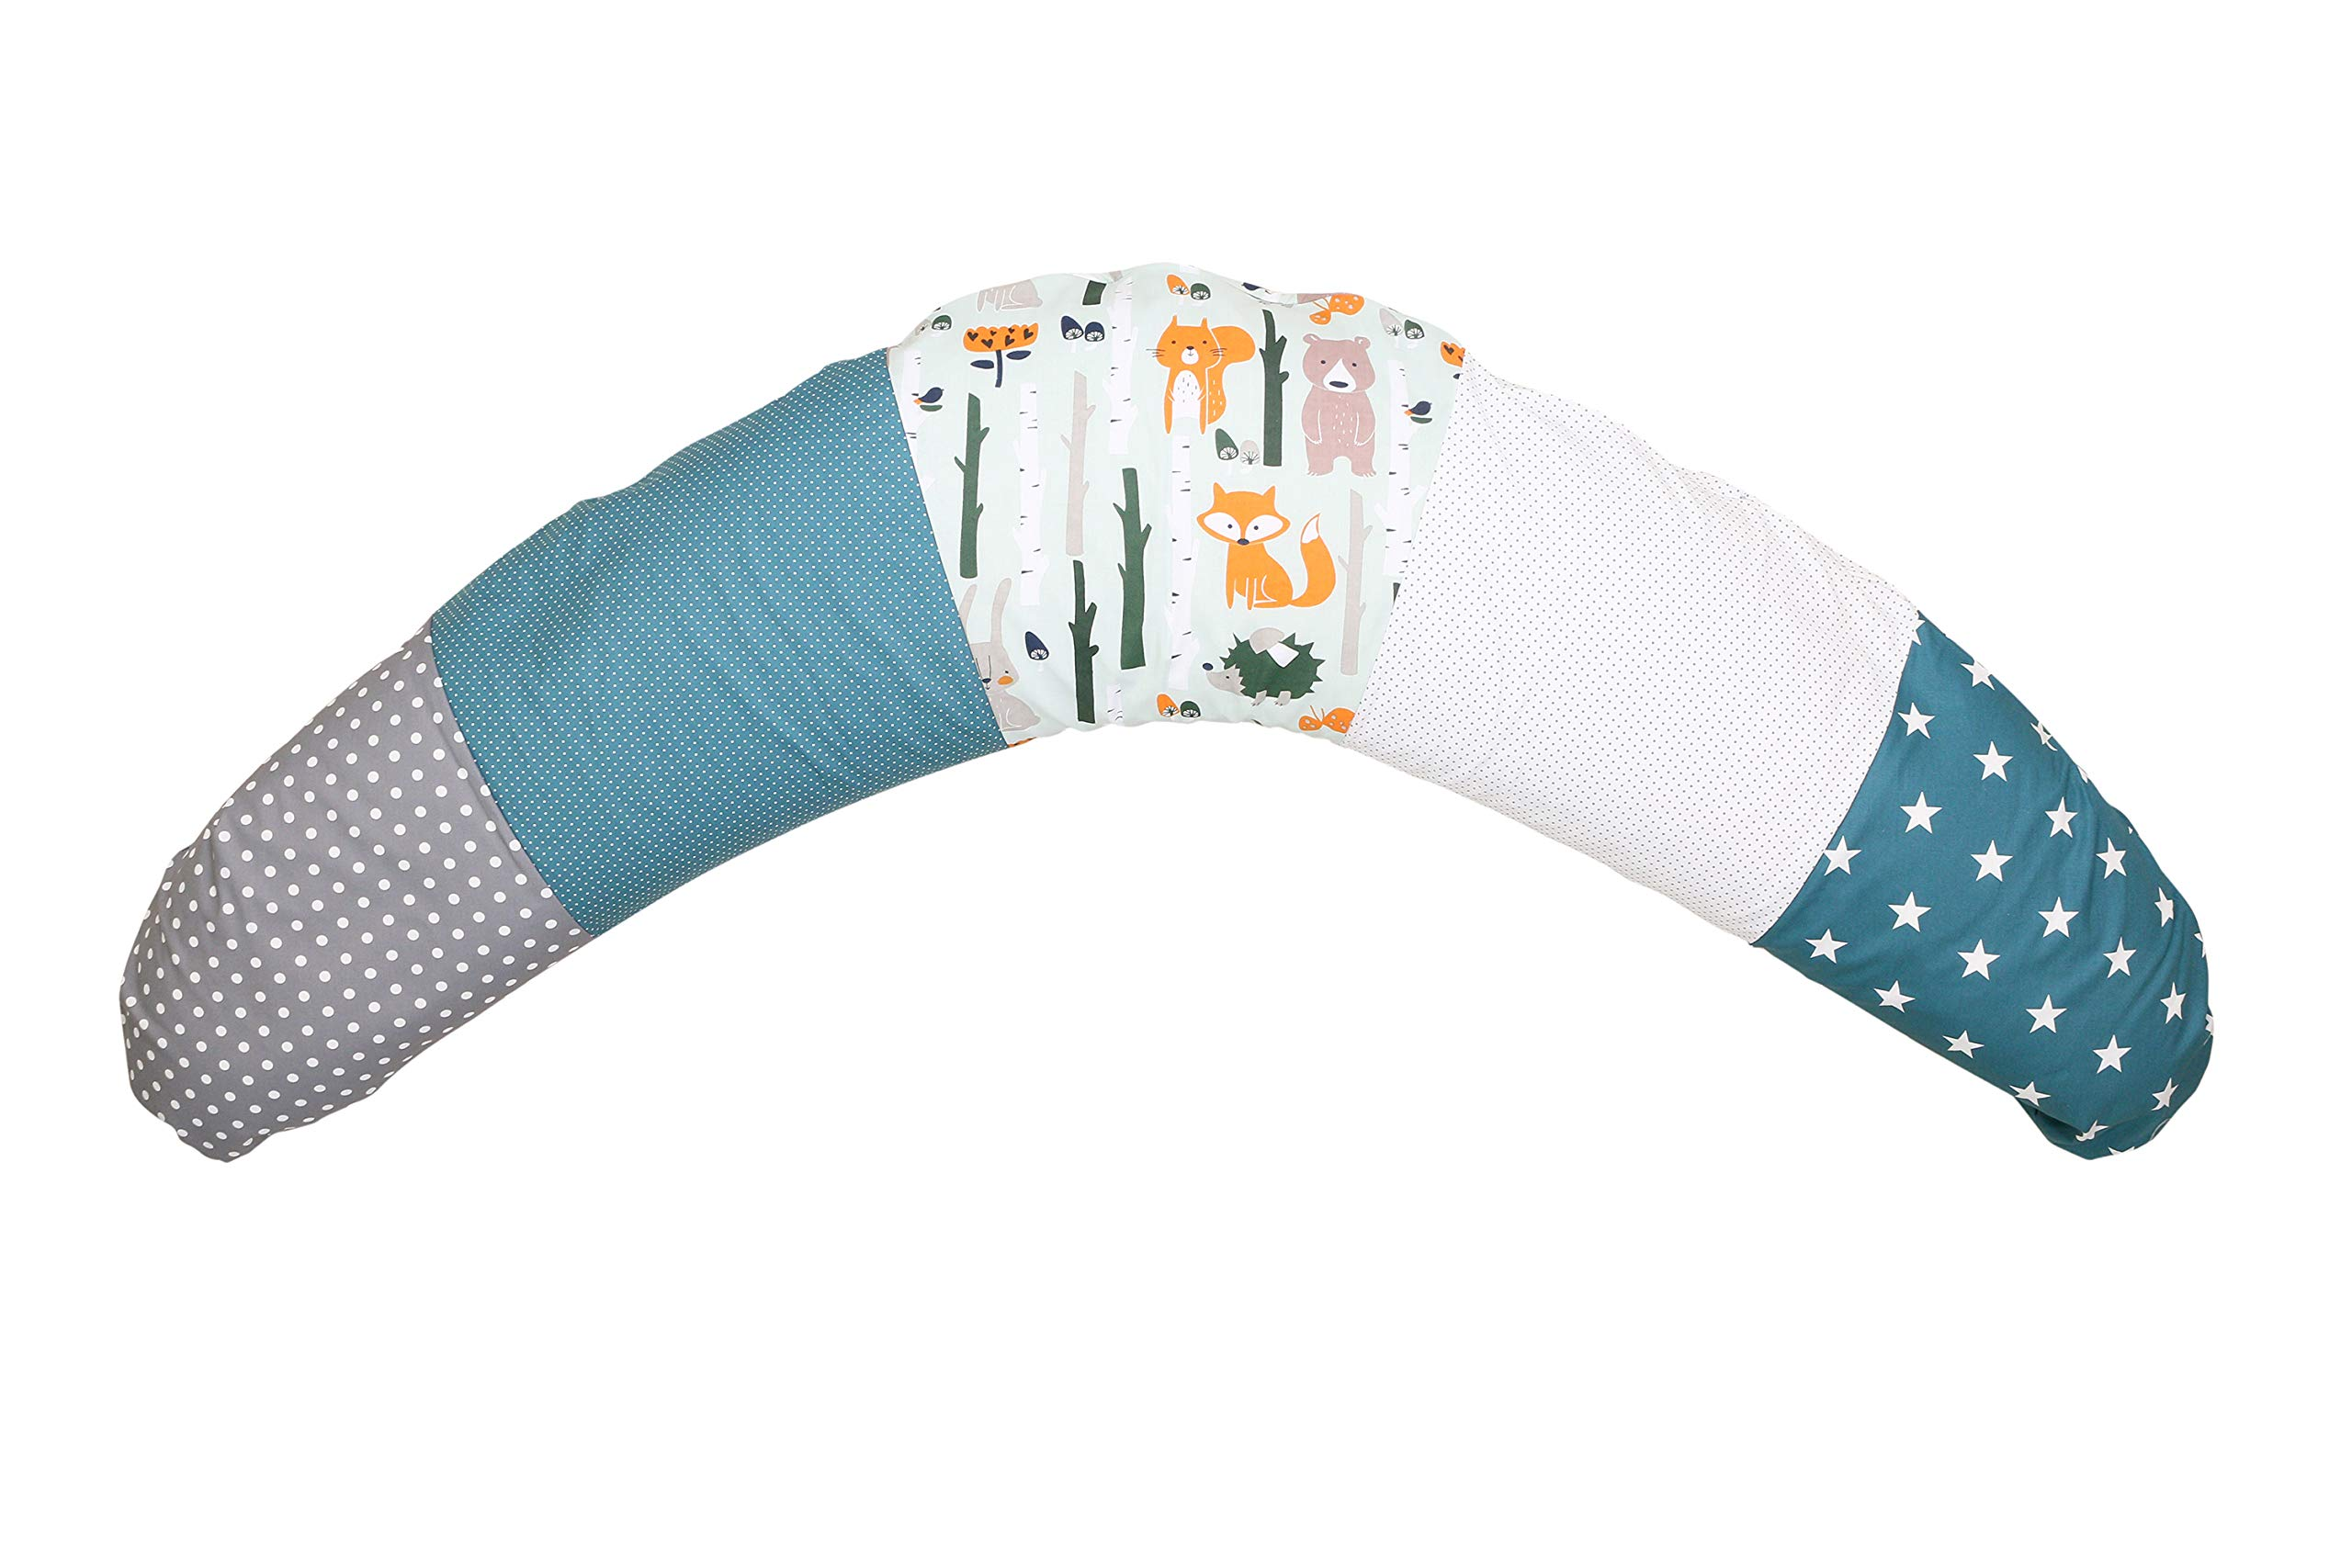 100% Cotton Nursing Pillow by ULLENBOOM | Woodland/Stars/Polka Dots | Breastfeeding/Side Sleeper | 75'' x 15'' - Unisex Teal/Grey by ULLENBOOM